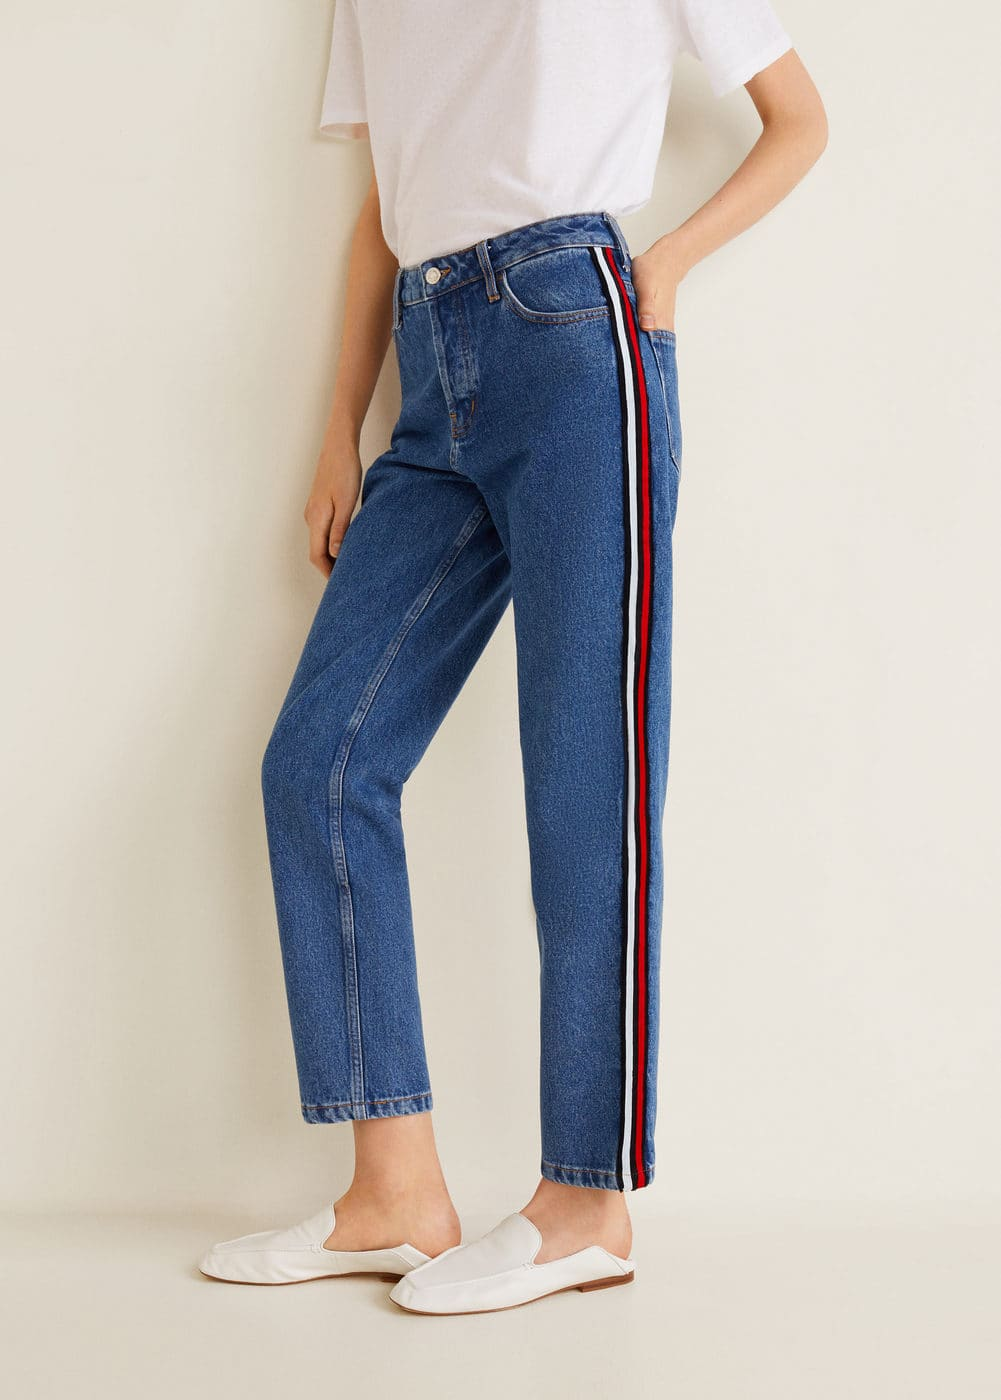 m-claudia:jeans relaxed claudia